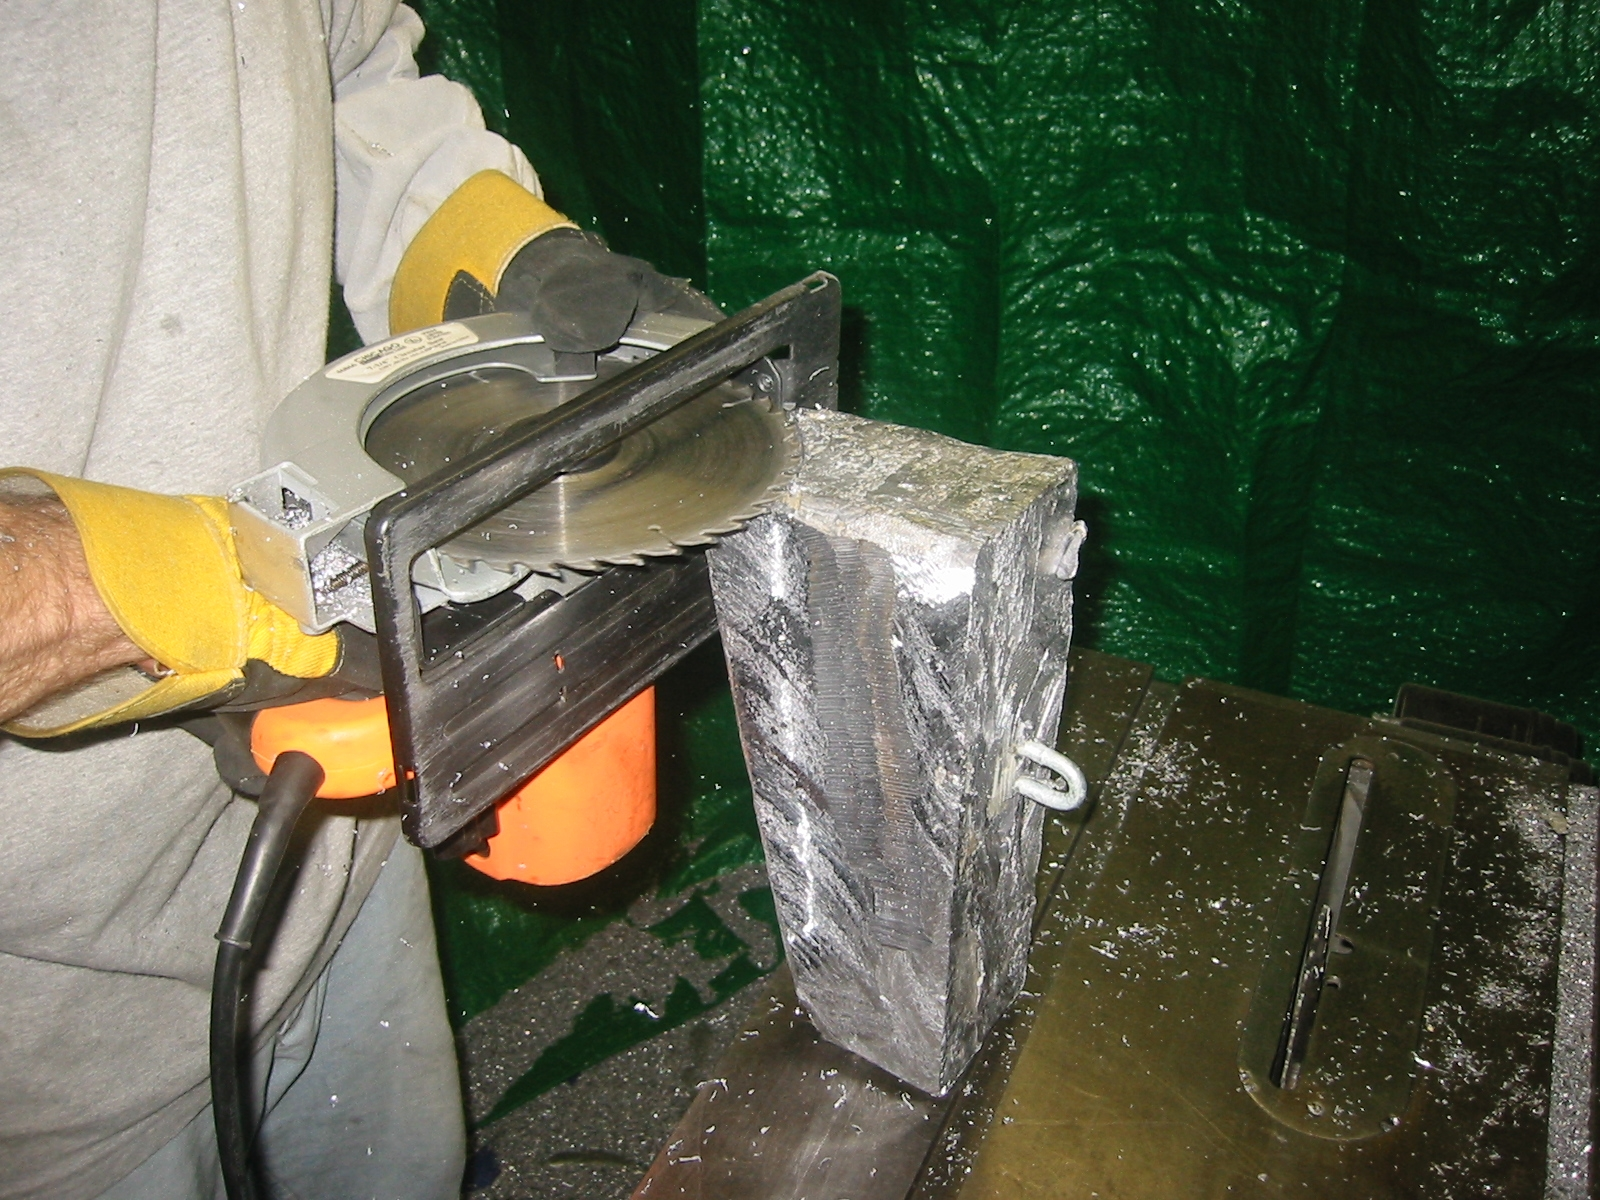 (4) We trimmed the lead blocks  with a skill saw using a carbide blade.  Tarps were hung to catch the chips.